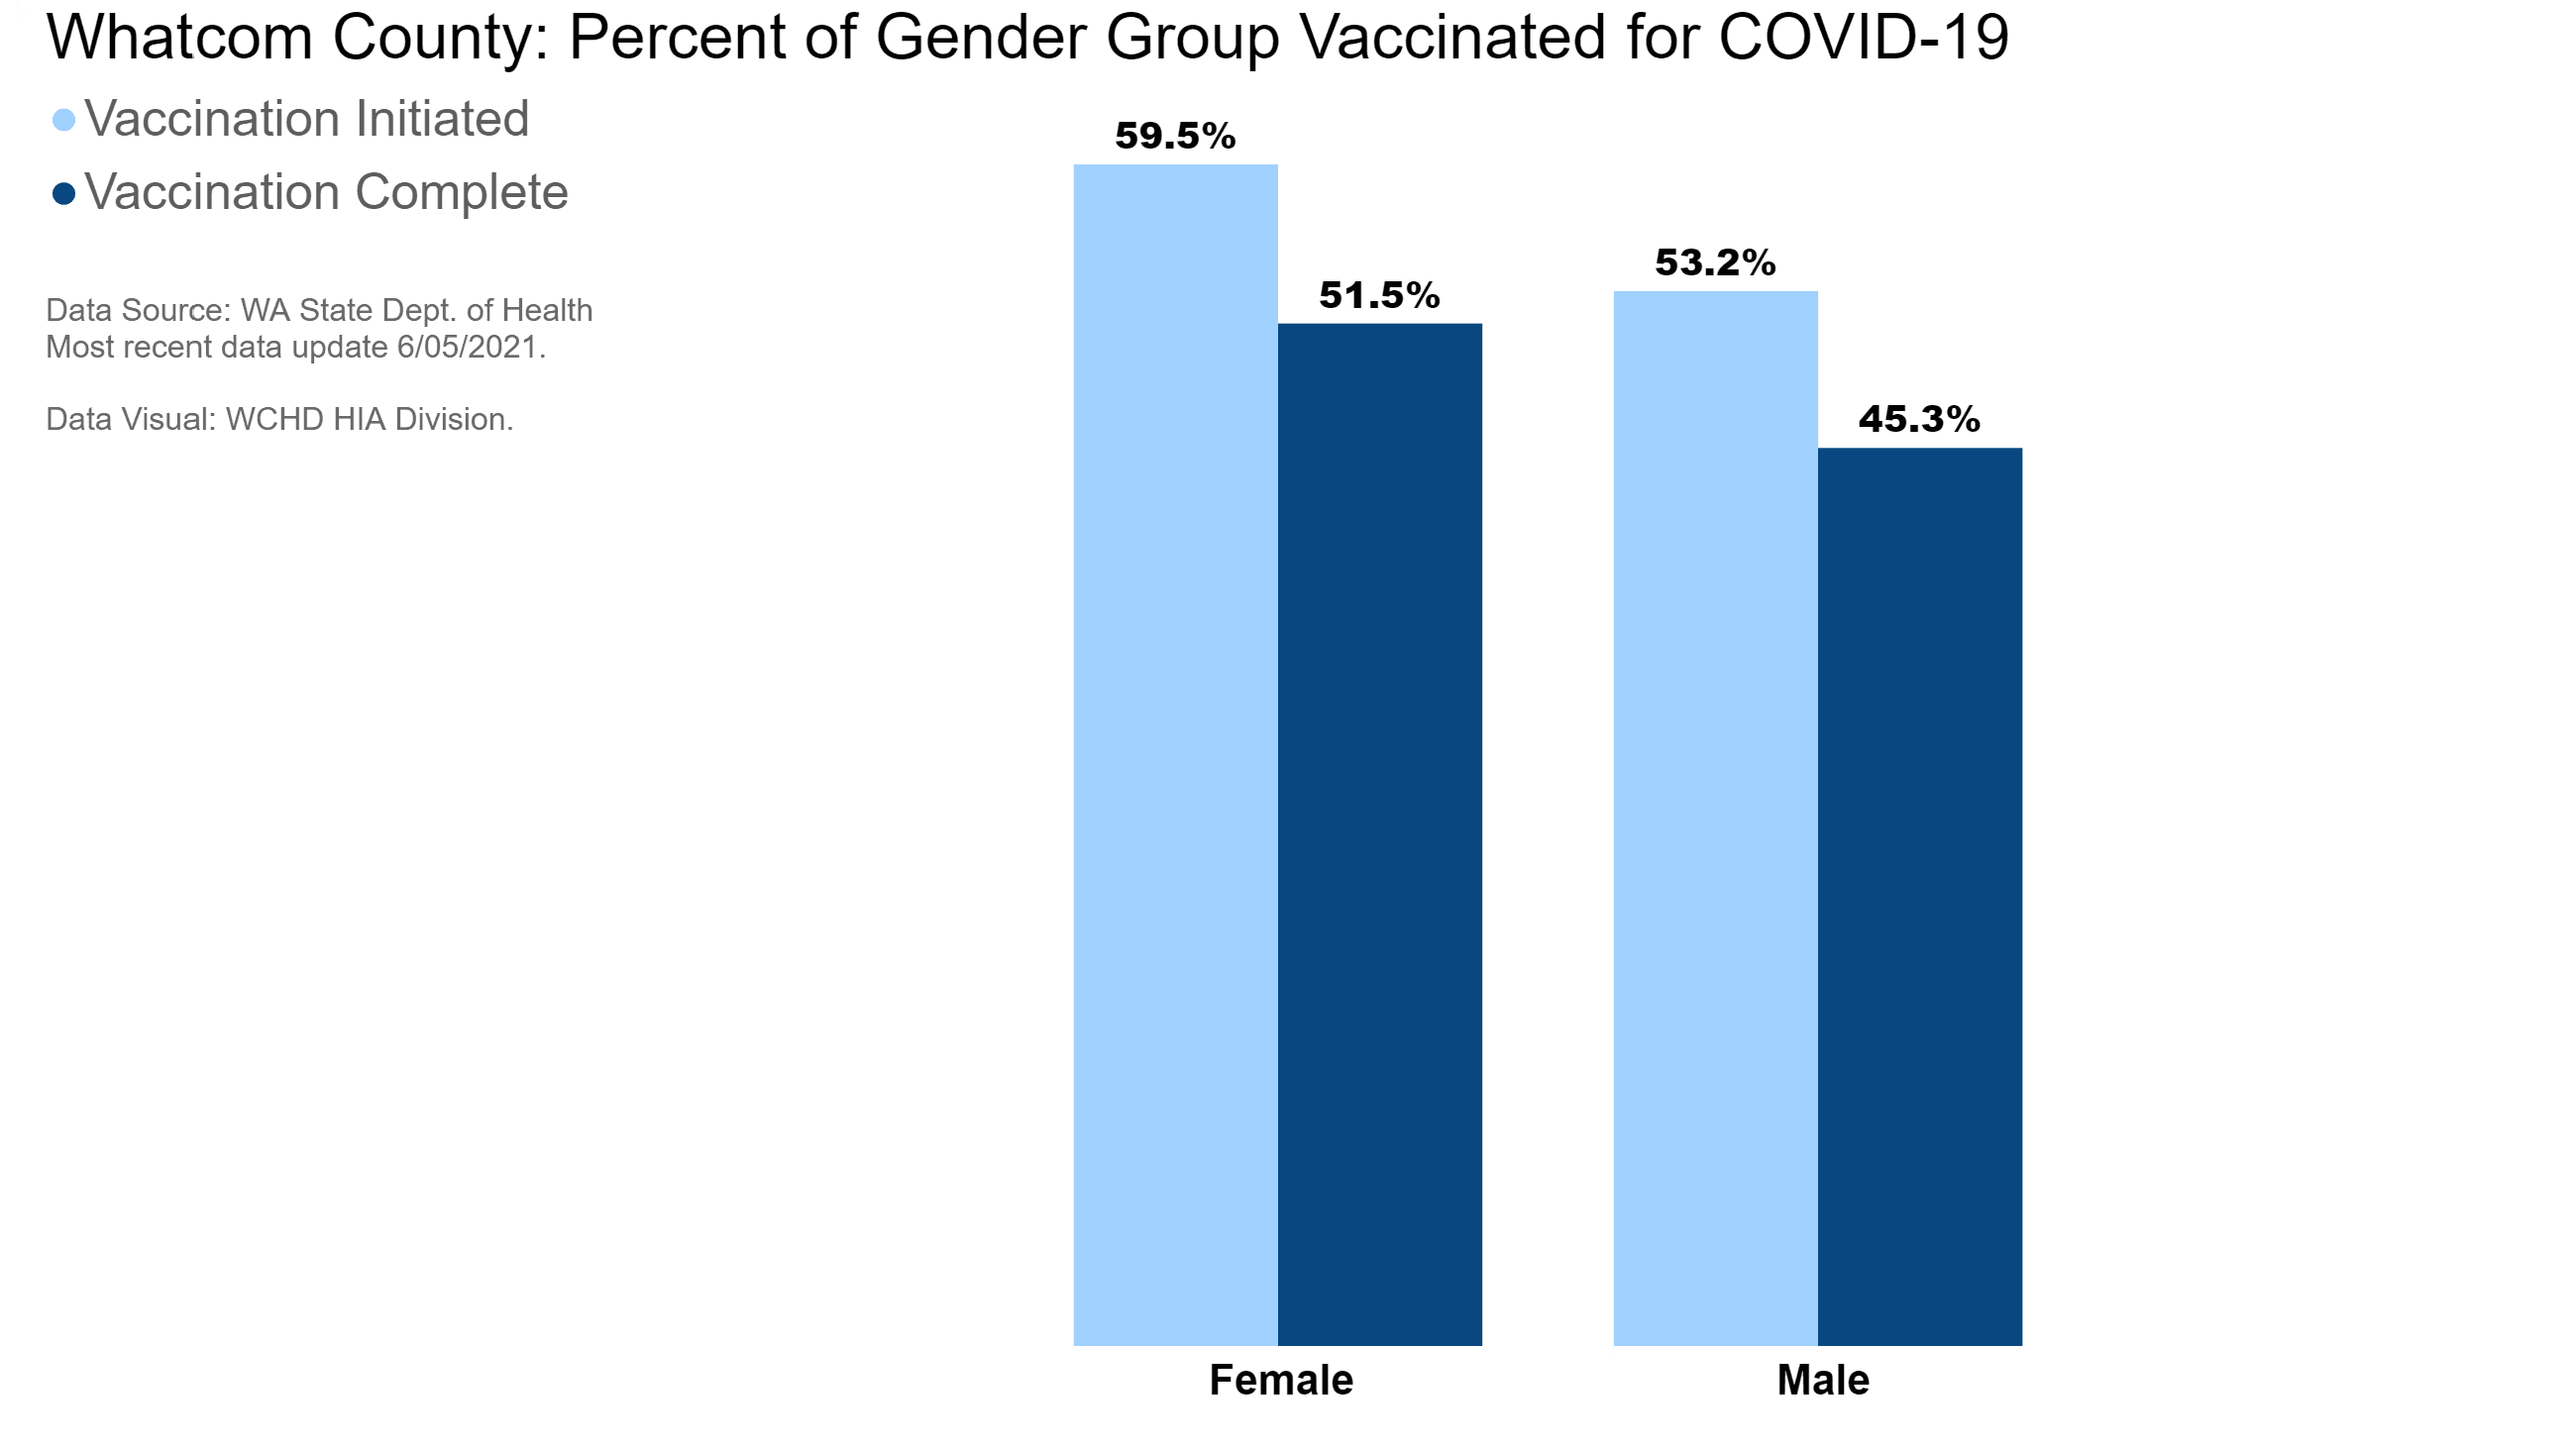 Whatcom County: percentage of gender group vaccinated for COVID-19